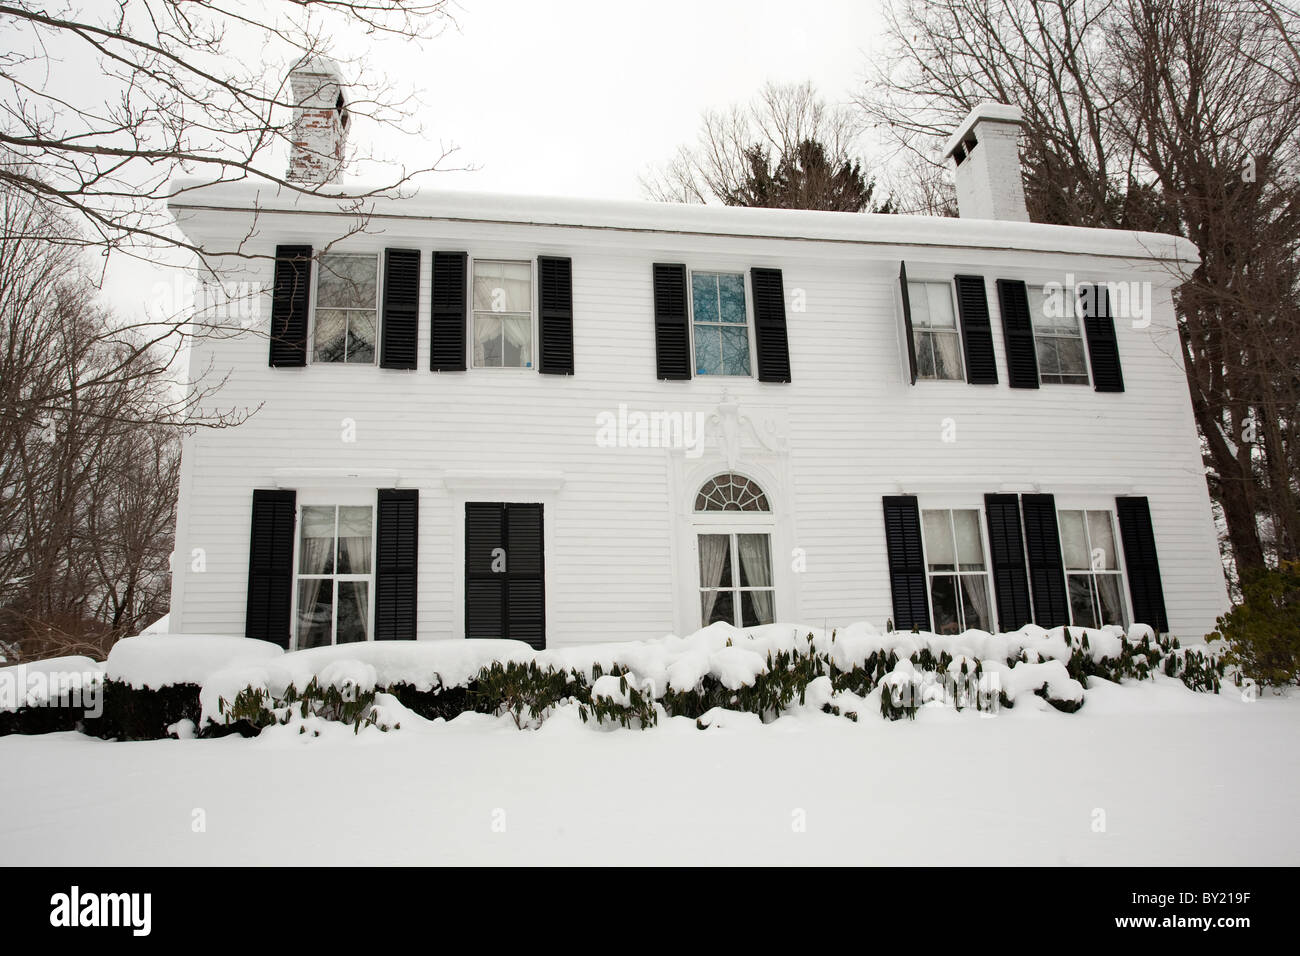 Snow is up to the window sills of a colonial home in Stockbridge, Massachusetts after a major snowstorm. - Stock Image